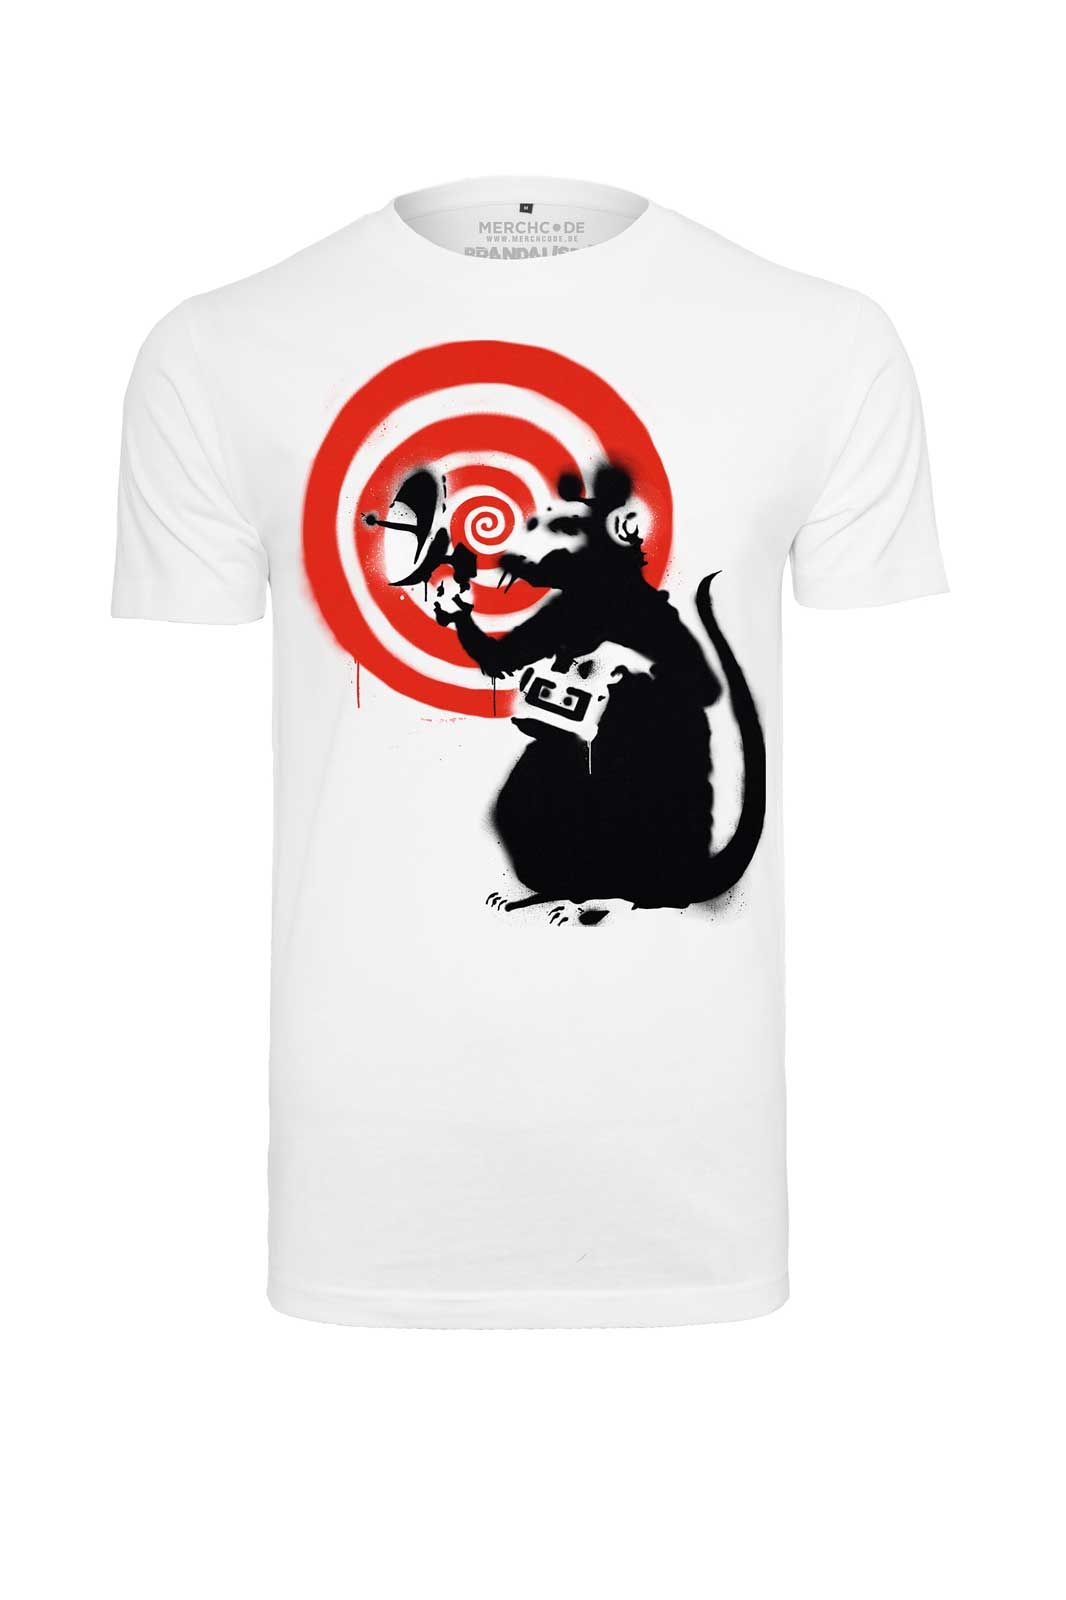 Tee Banksy Spy Rat